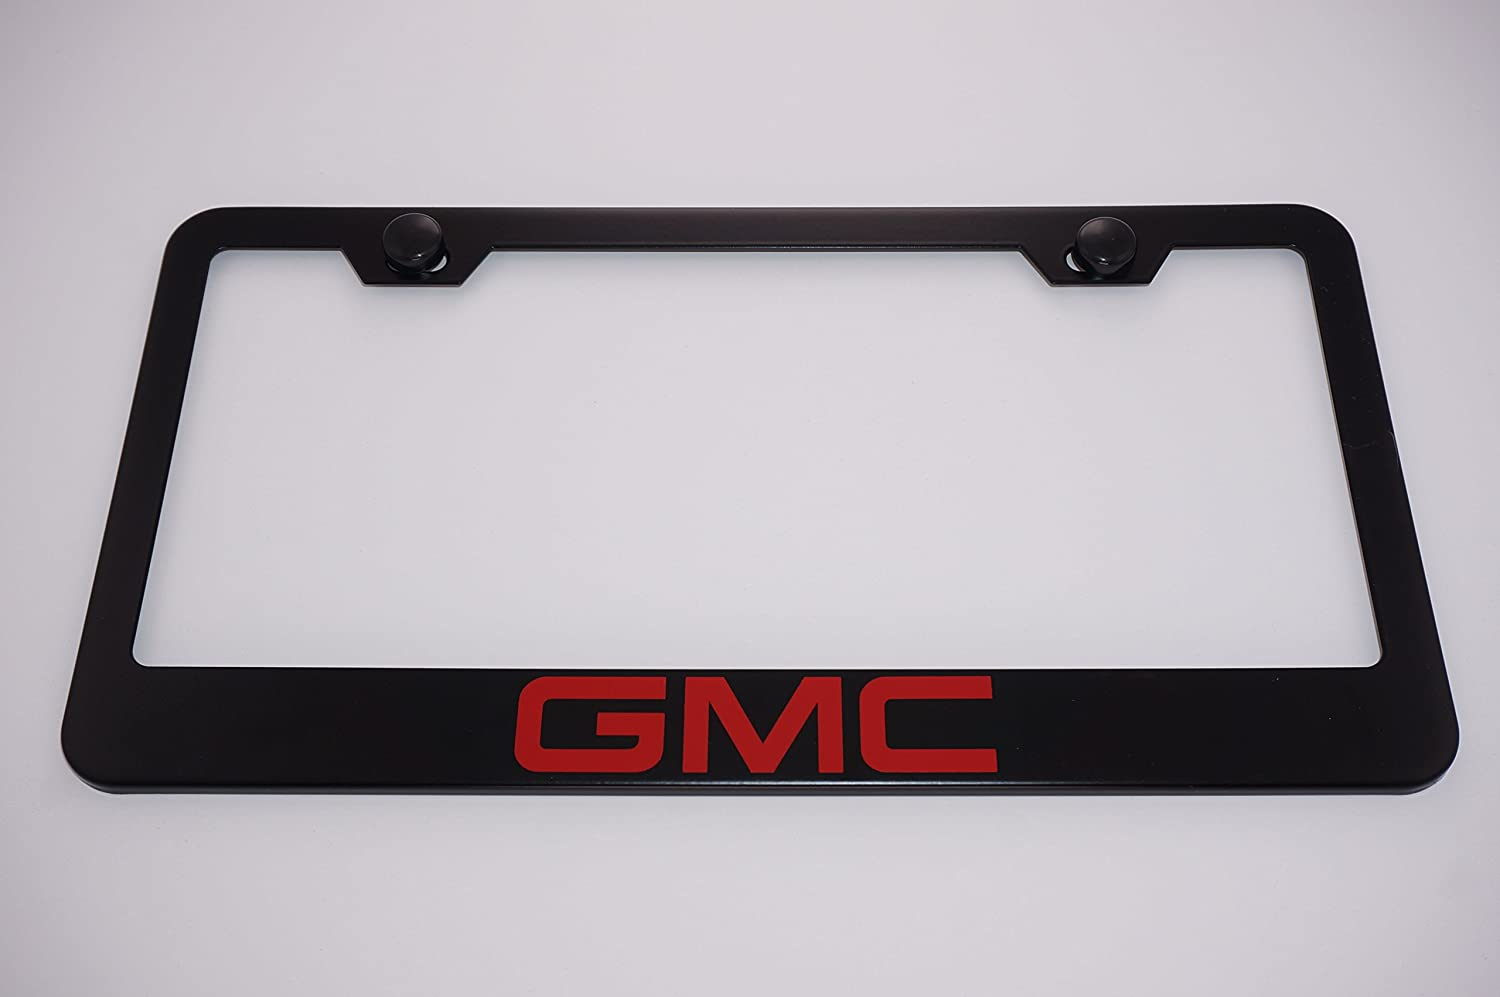 Luxury Gmc License Plate Frames Ensign - Picture Frame Ideas ...